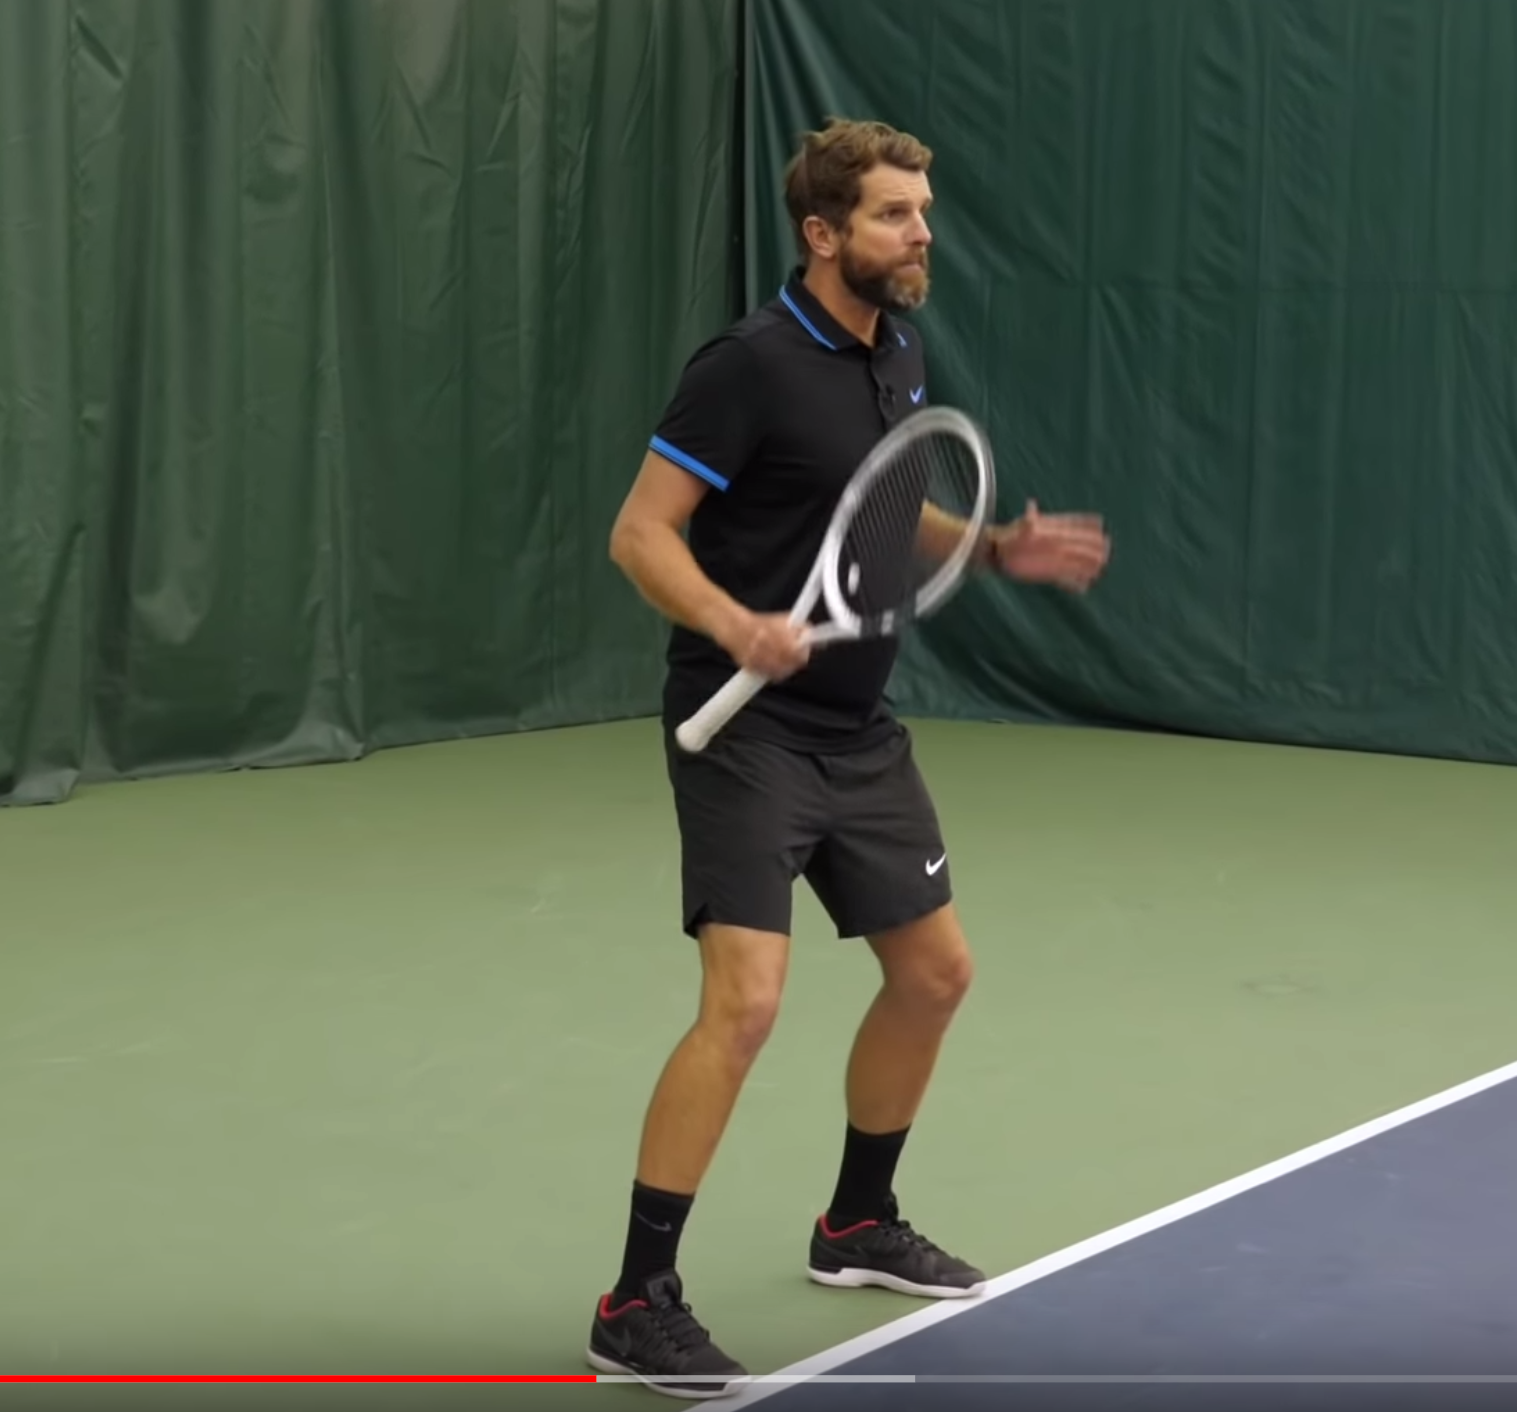 Are You Using The Right Stance For Max Serve Power